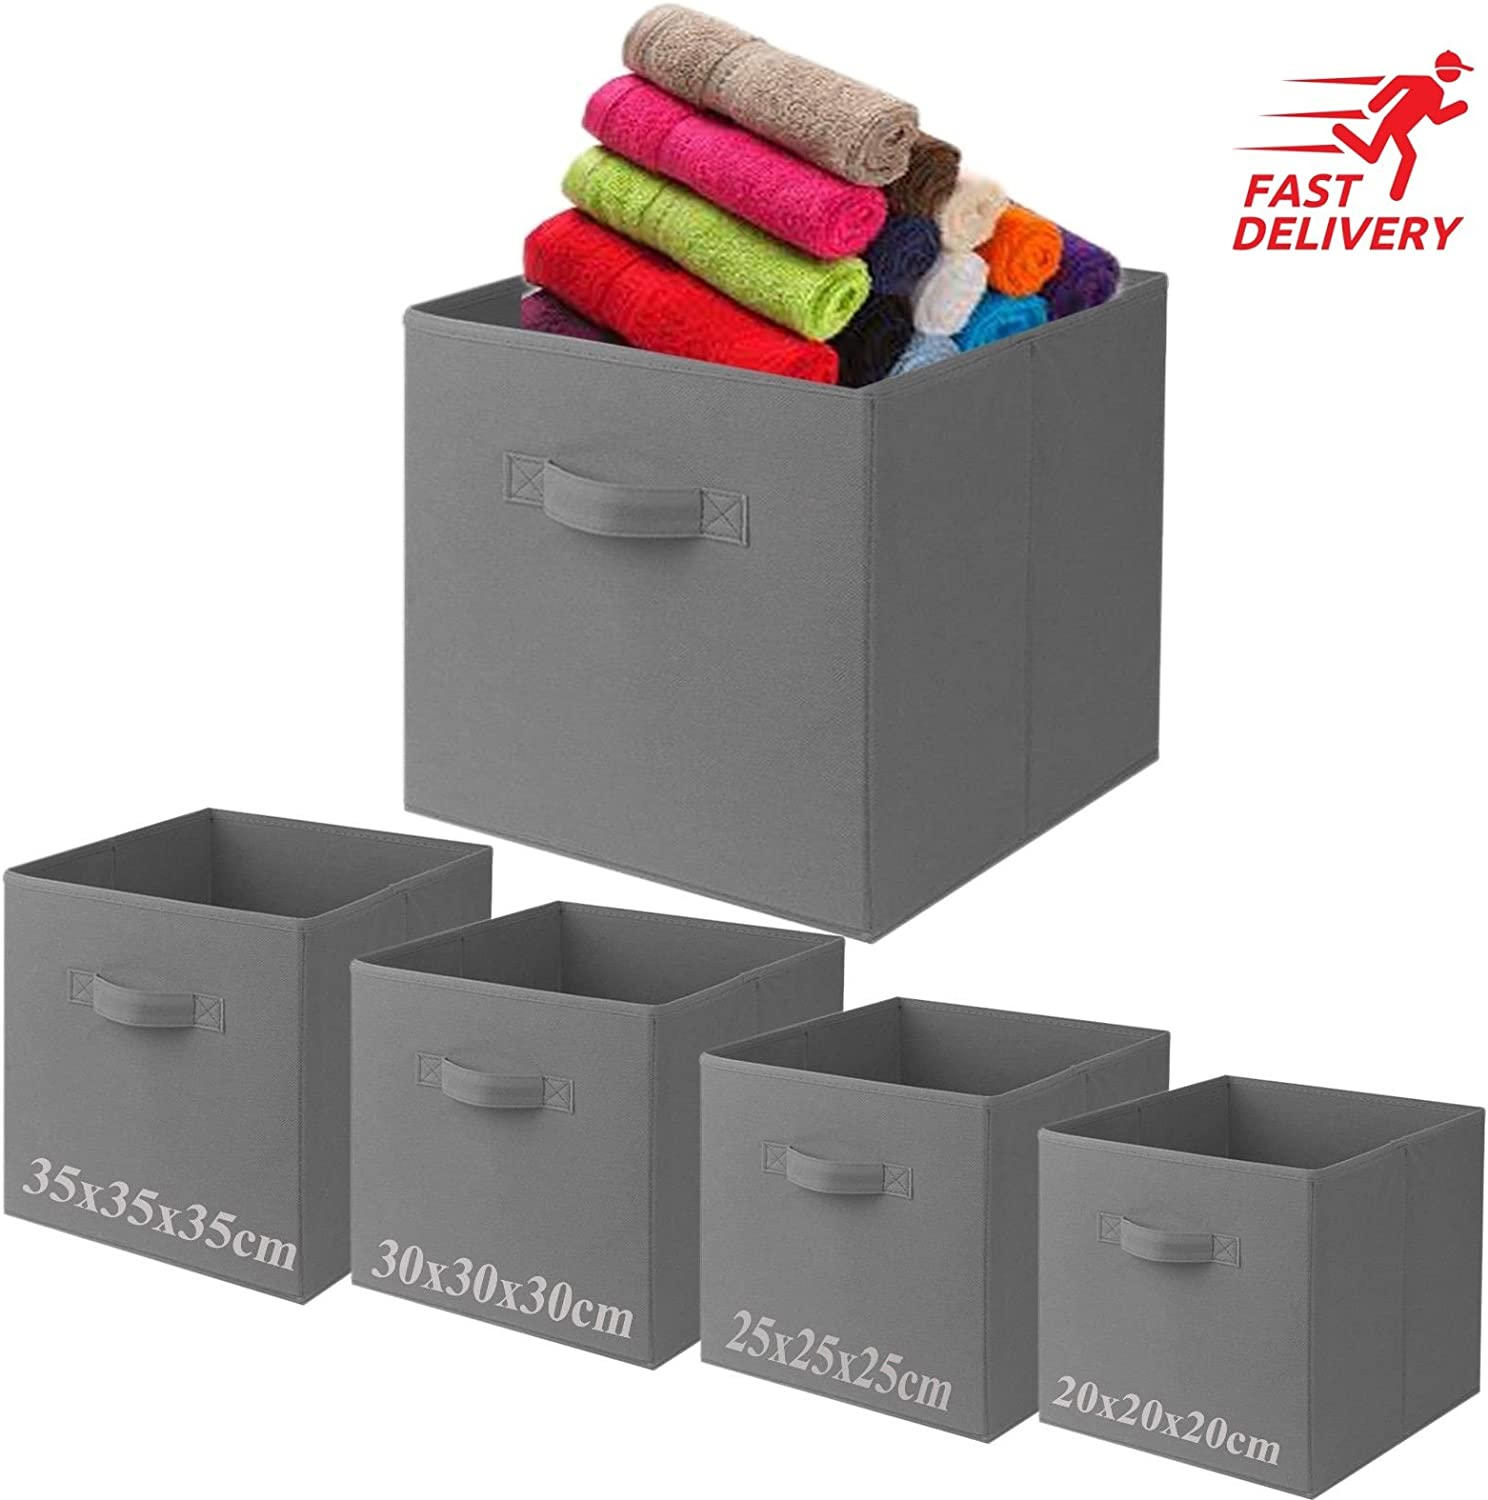 Fabric Foldable Square Canvas Storage Box Collapsible Folding Box Cubes Kids Toys Drawer (Small (20x20x20cm), Grey)